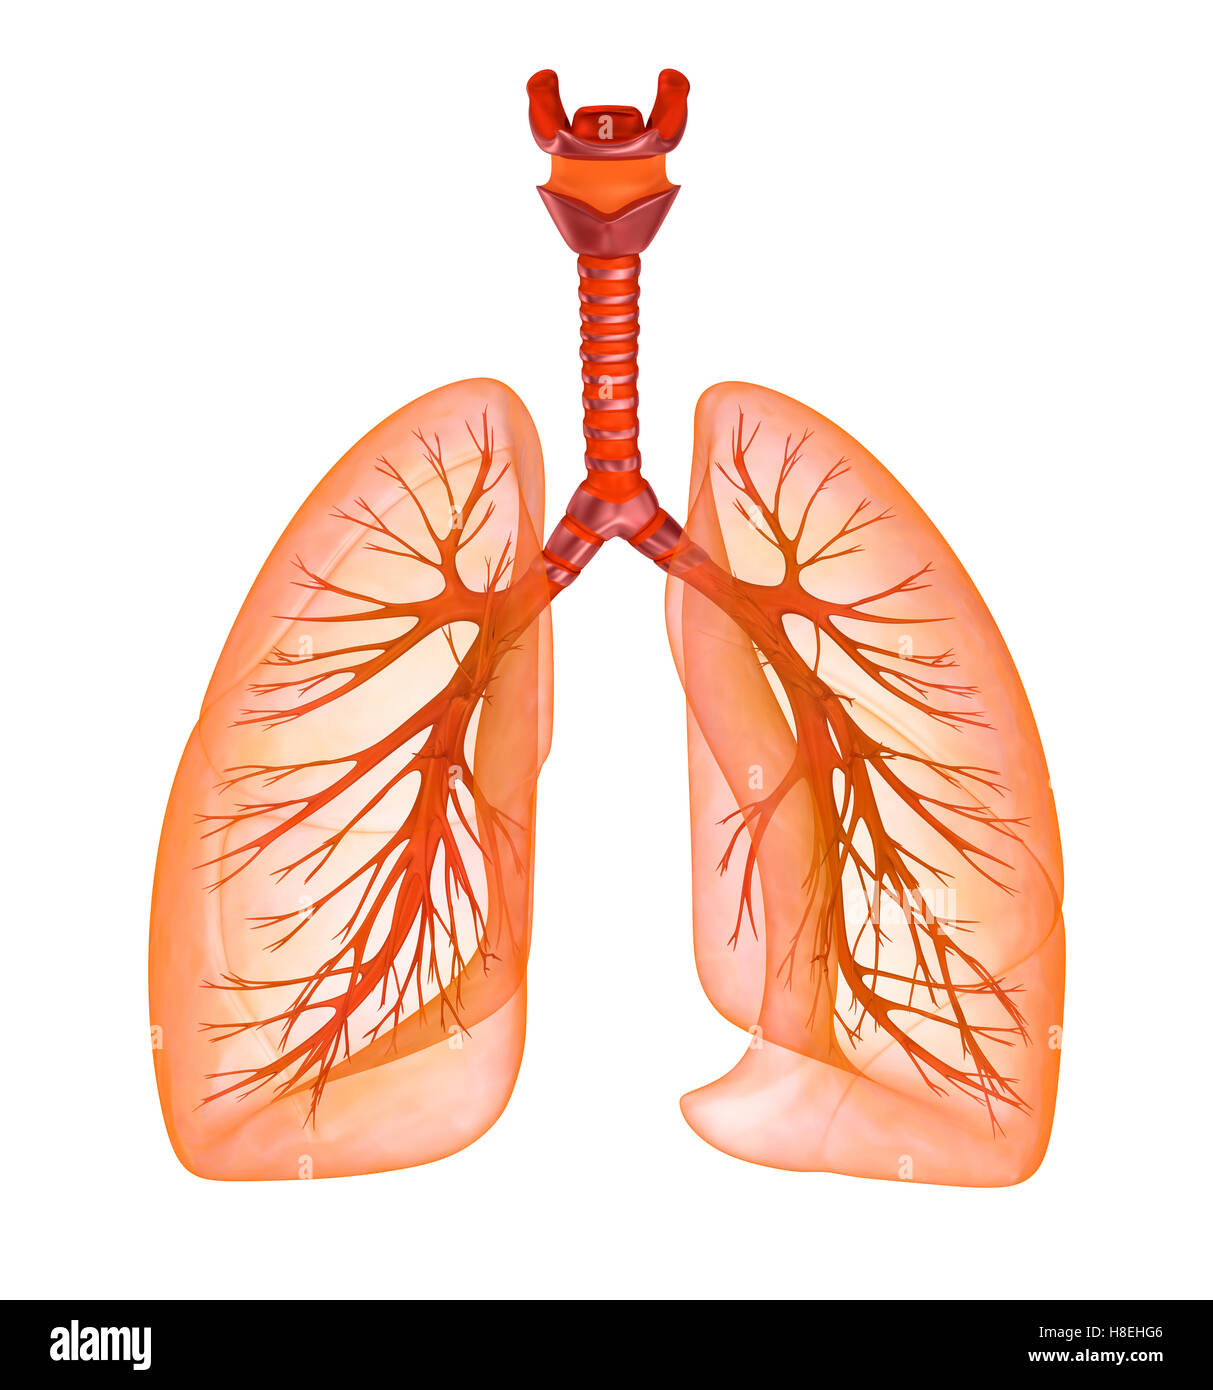 human lungs and trachea. medically accurate 3d illustration stock, Cephalic Vein